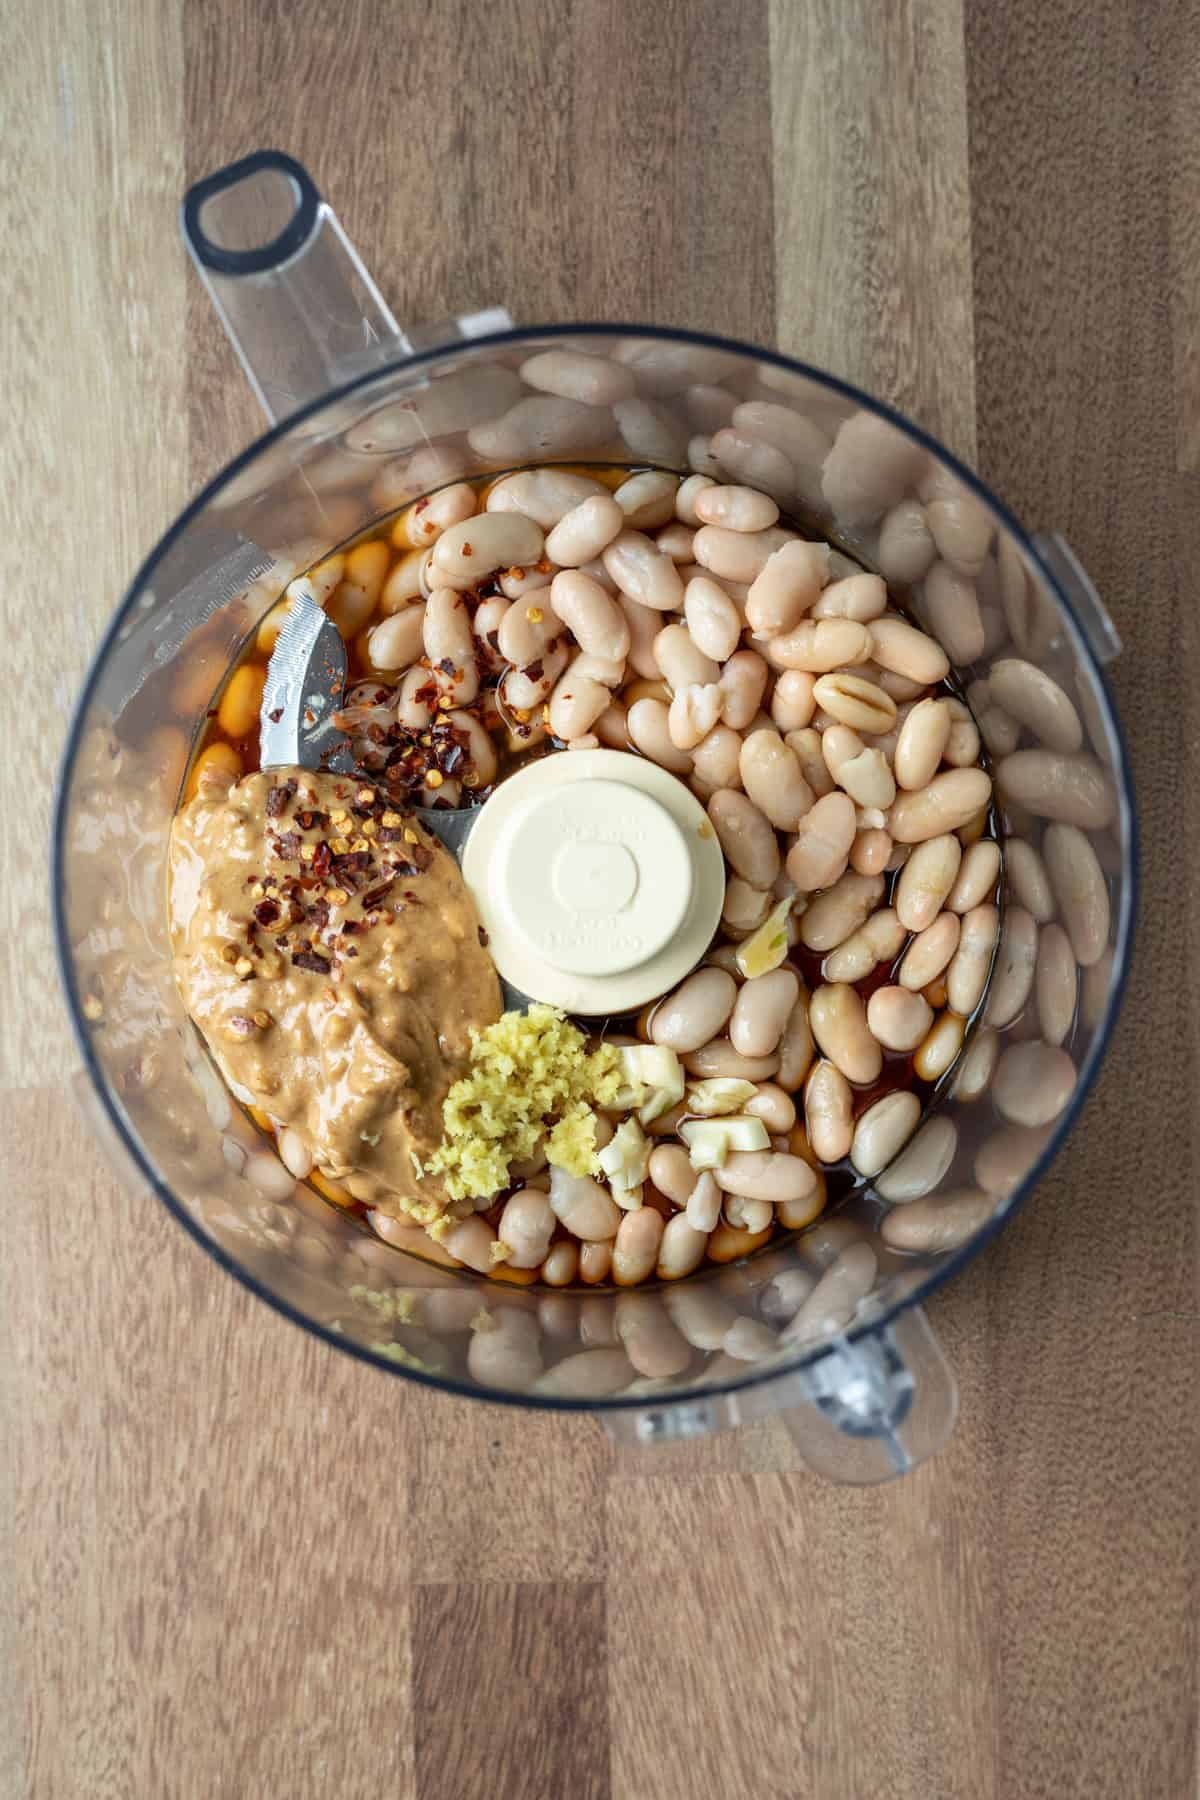 ingredients inside the bowl of a food processor before blending.